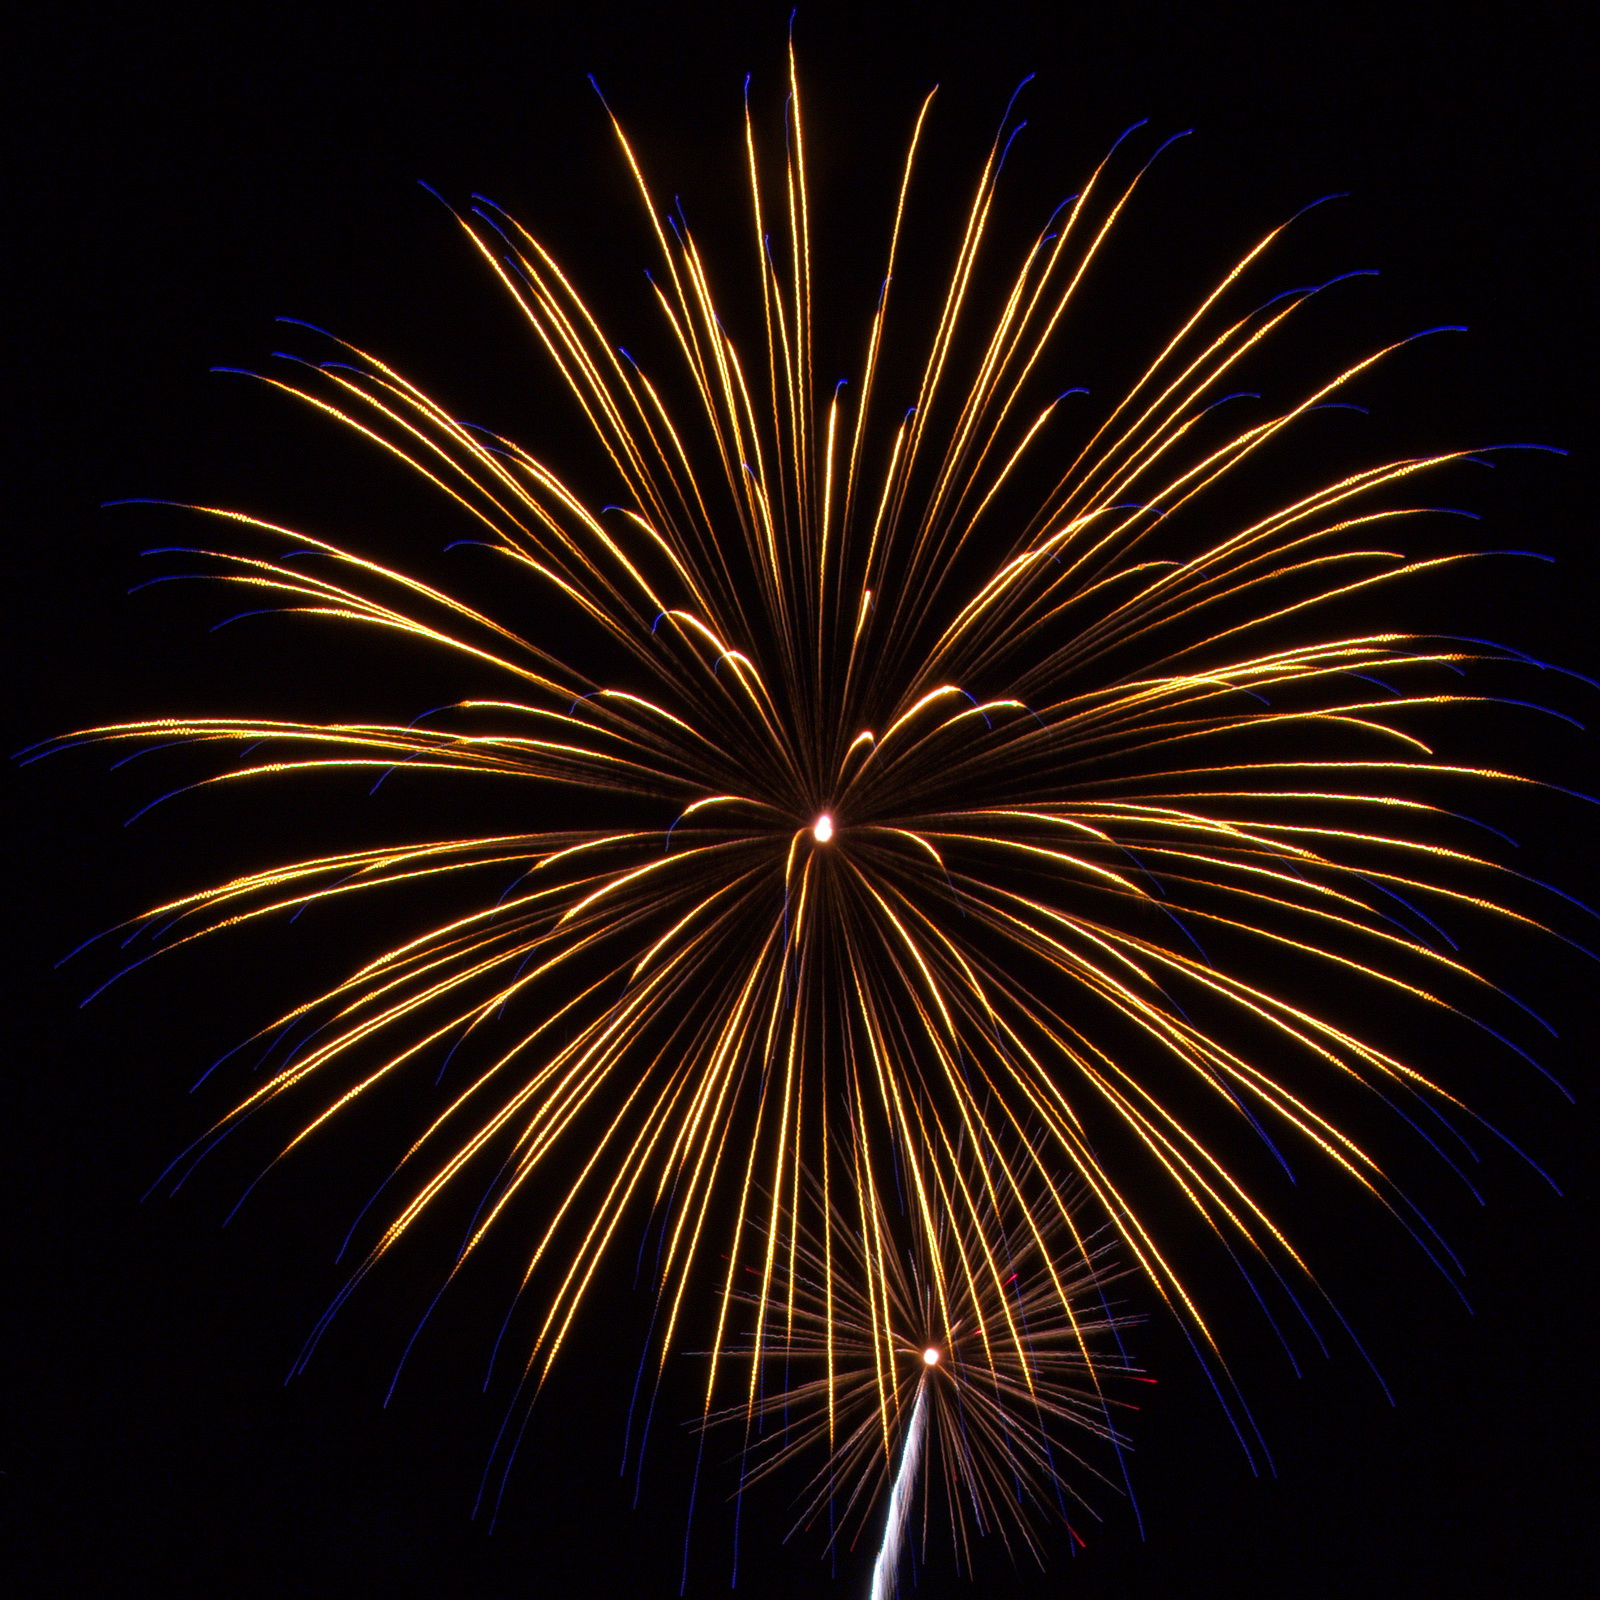 Massachusetts Fireworks: Yellow with blue tips